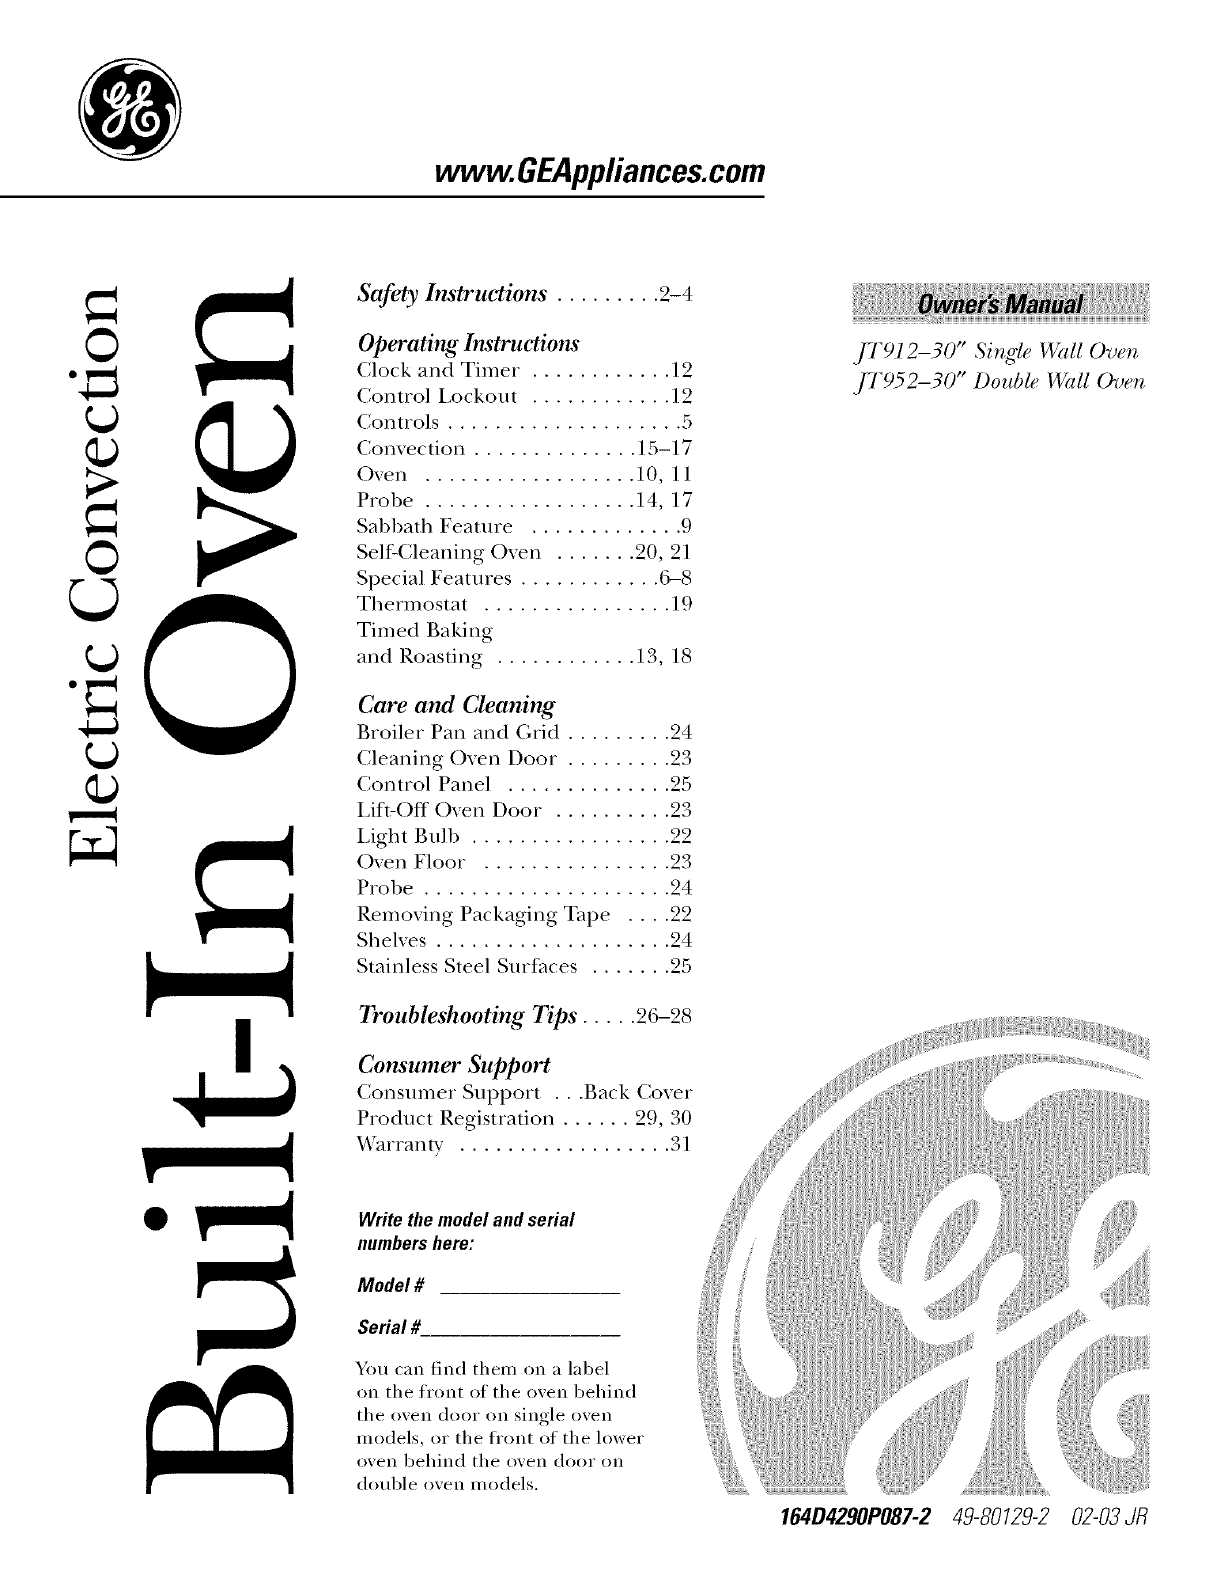 Ge oven j7912 30 user guide manualsonline geappliances publicscrutiny Images